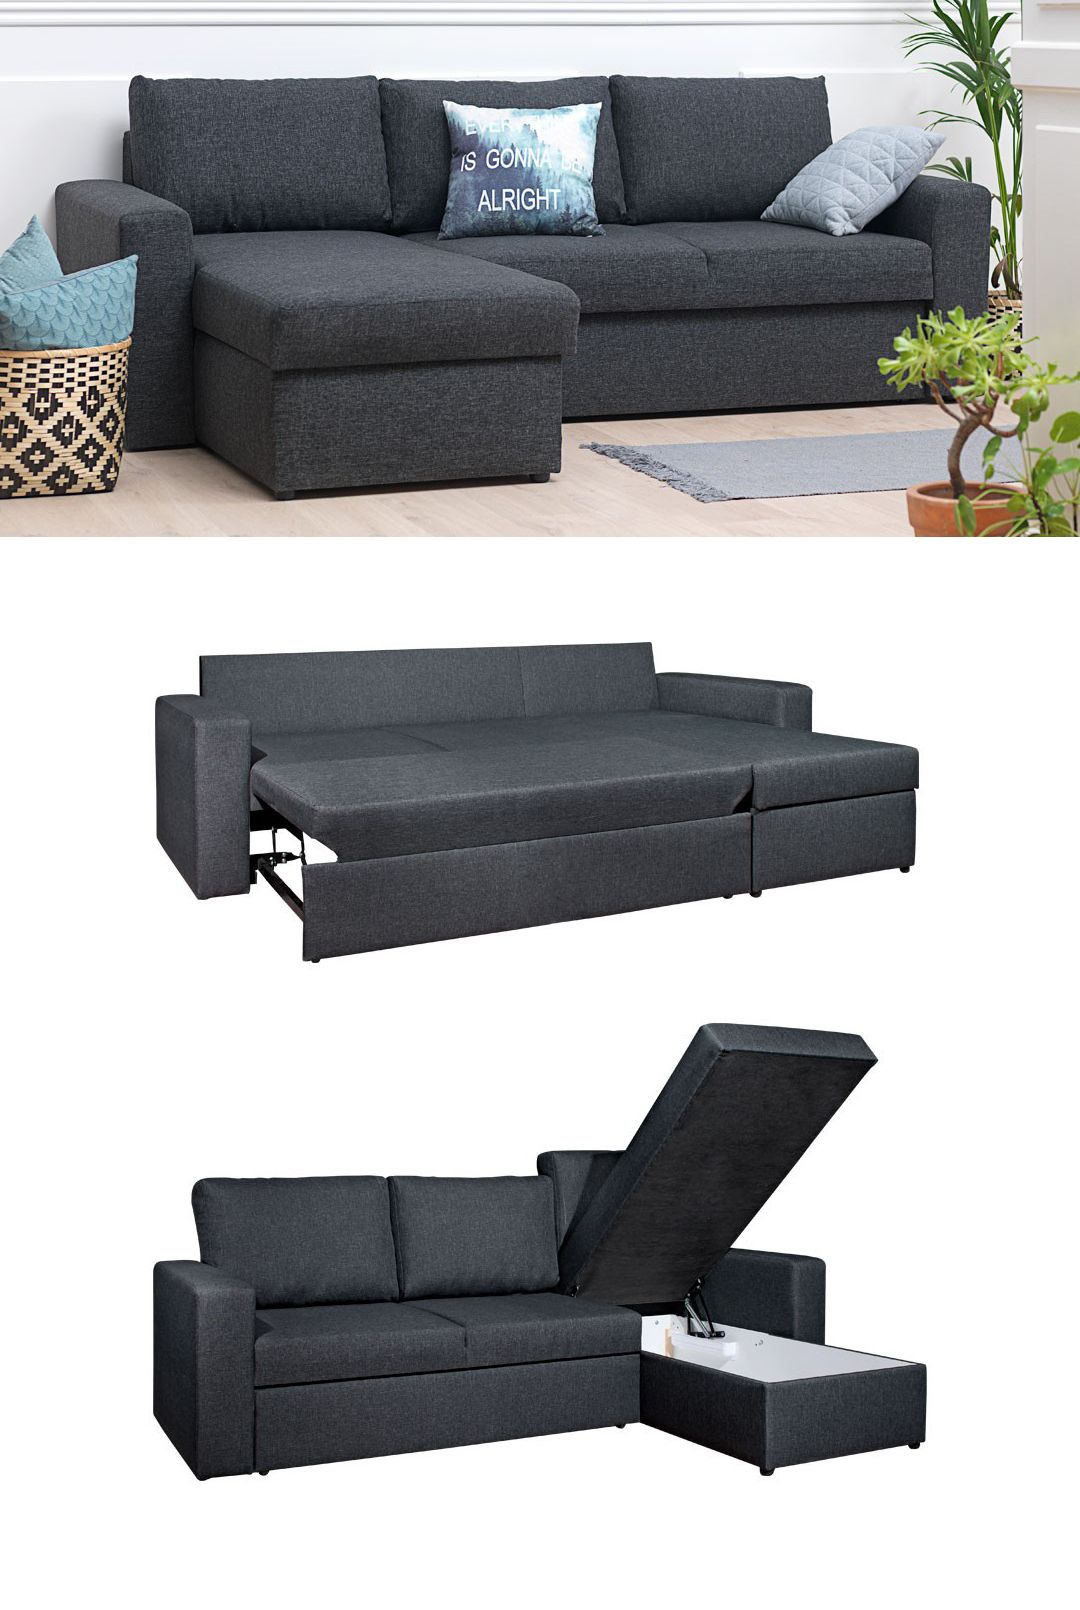 MARIAGER Sofa Bed (Dark Grey)